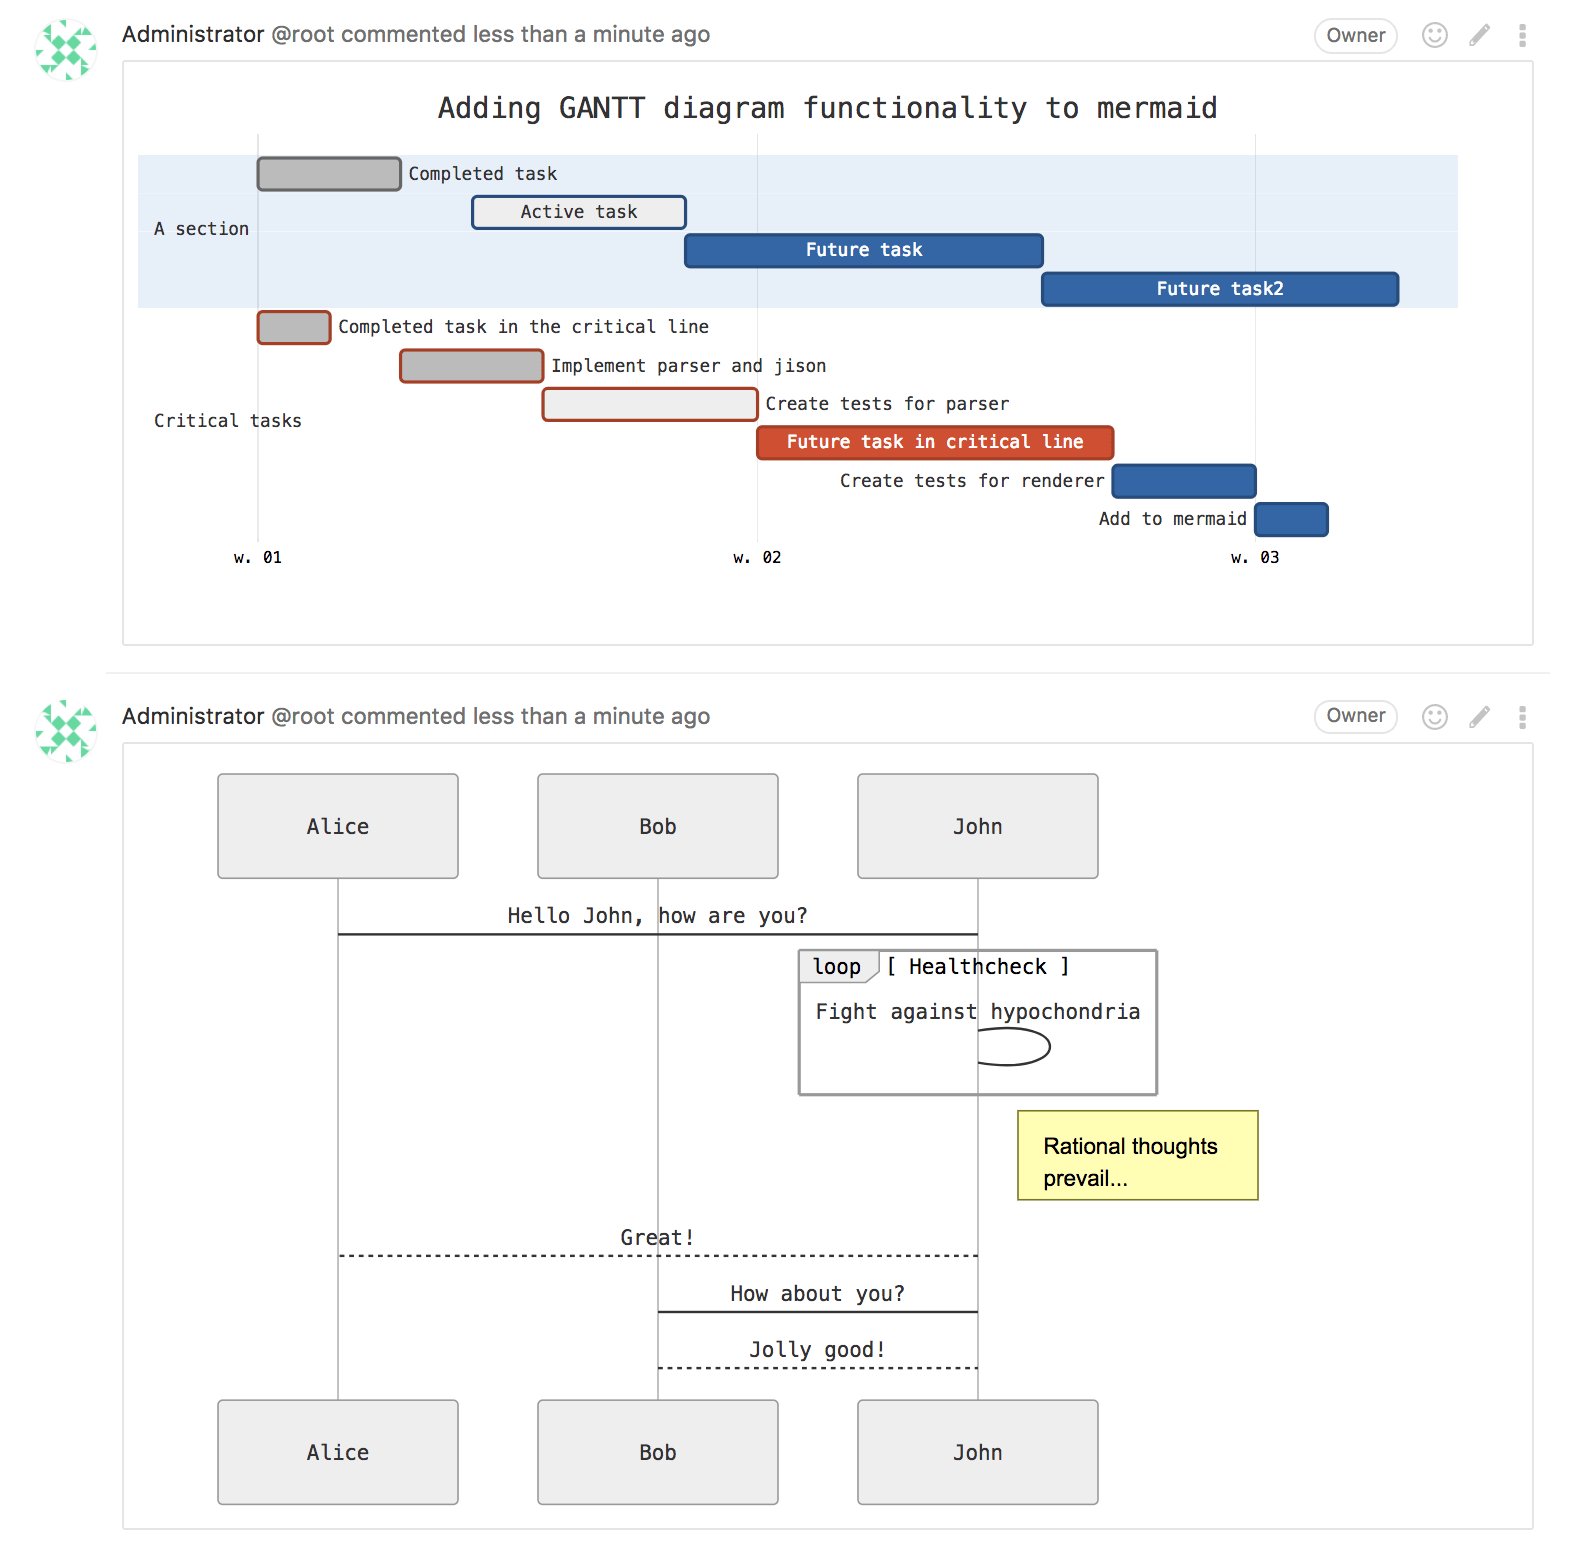 Иллюстрация к Flow charts, sequence diagrams, and Gantt diagrams in GitLab Flavored Markdown (GFM) with Mermaid